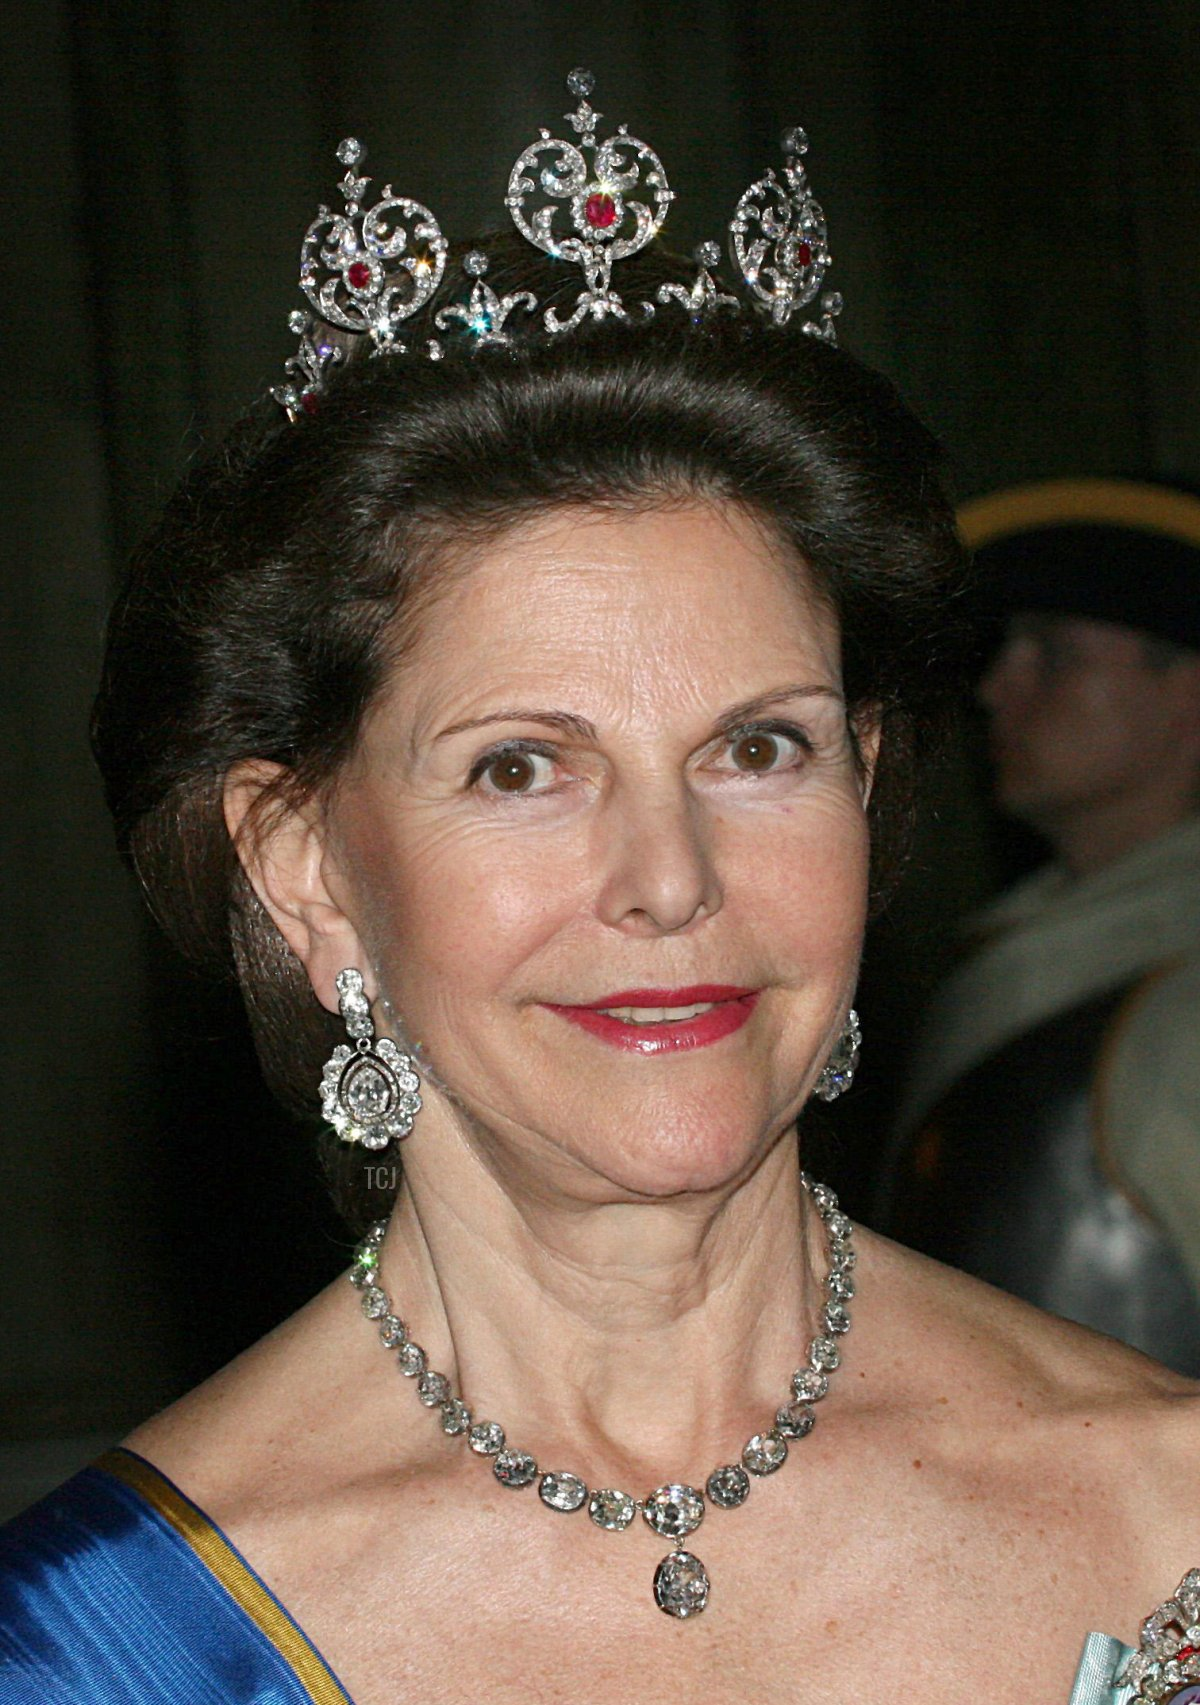 Swedish Queen Silvia smiles during a gala for the Greek President at the Royal Palace in Stockholm, Sweden, 20 May 2008